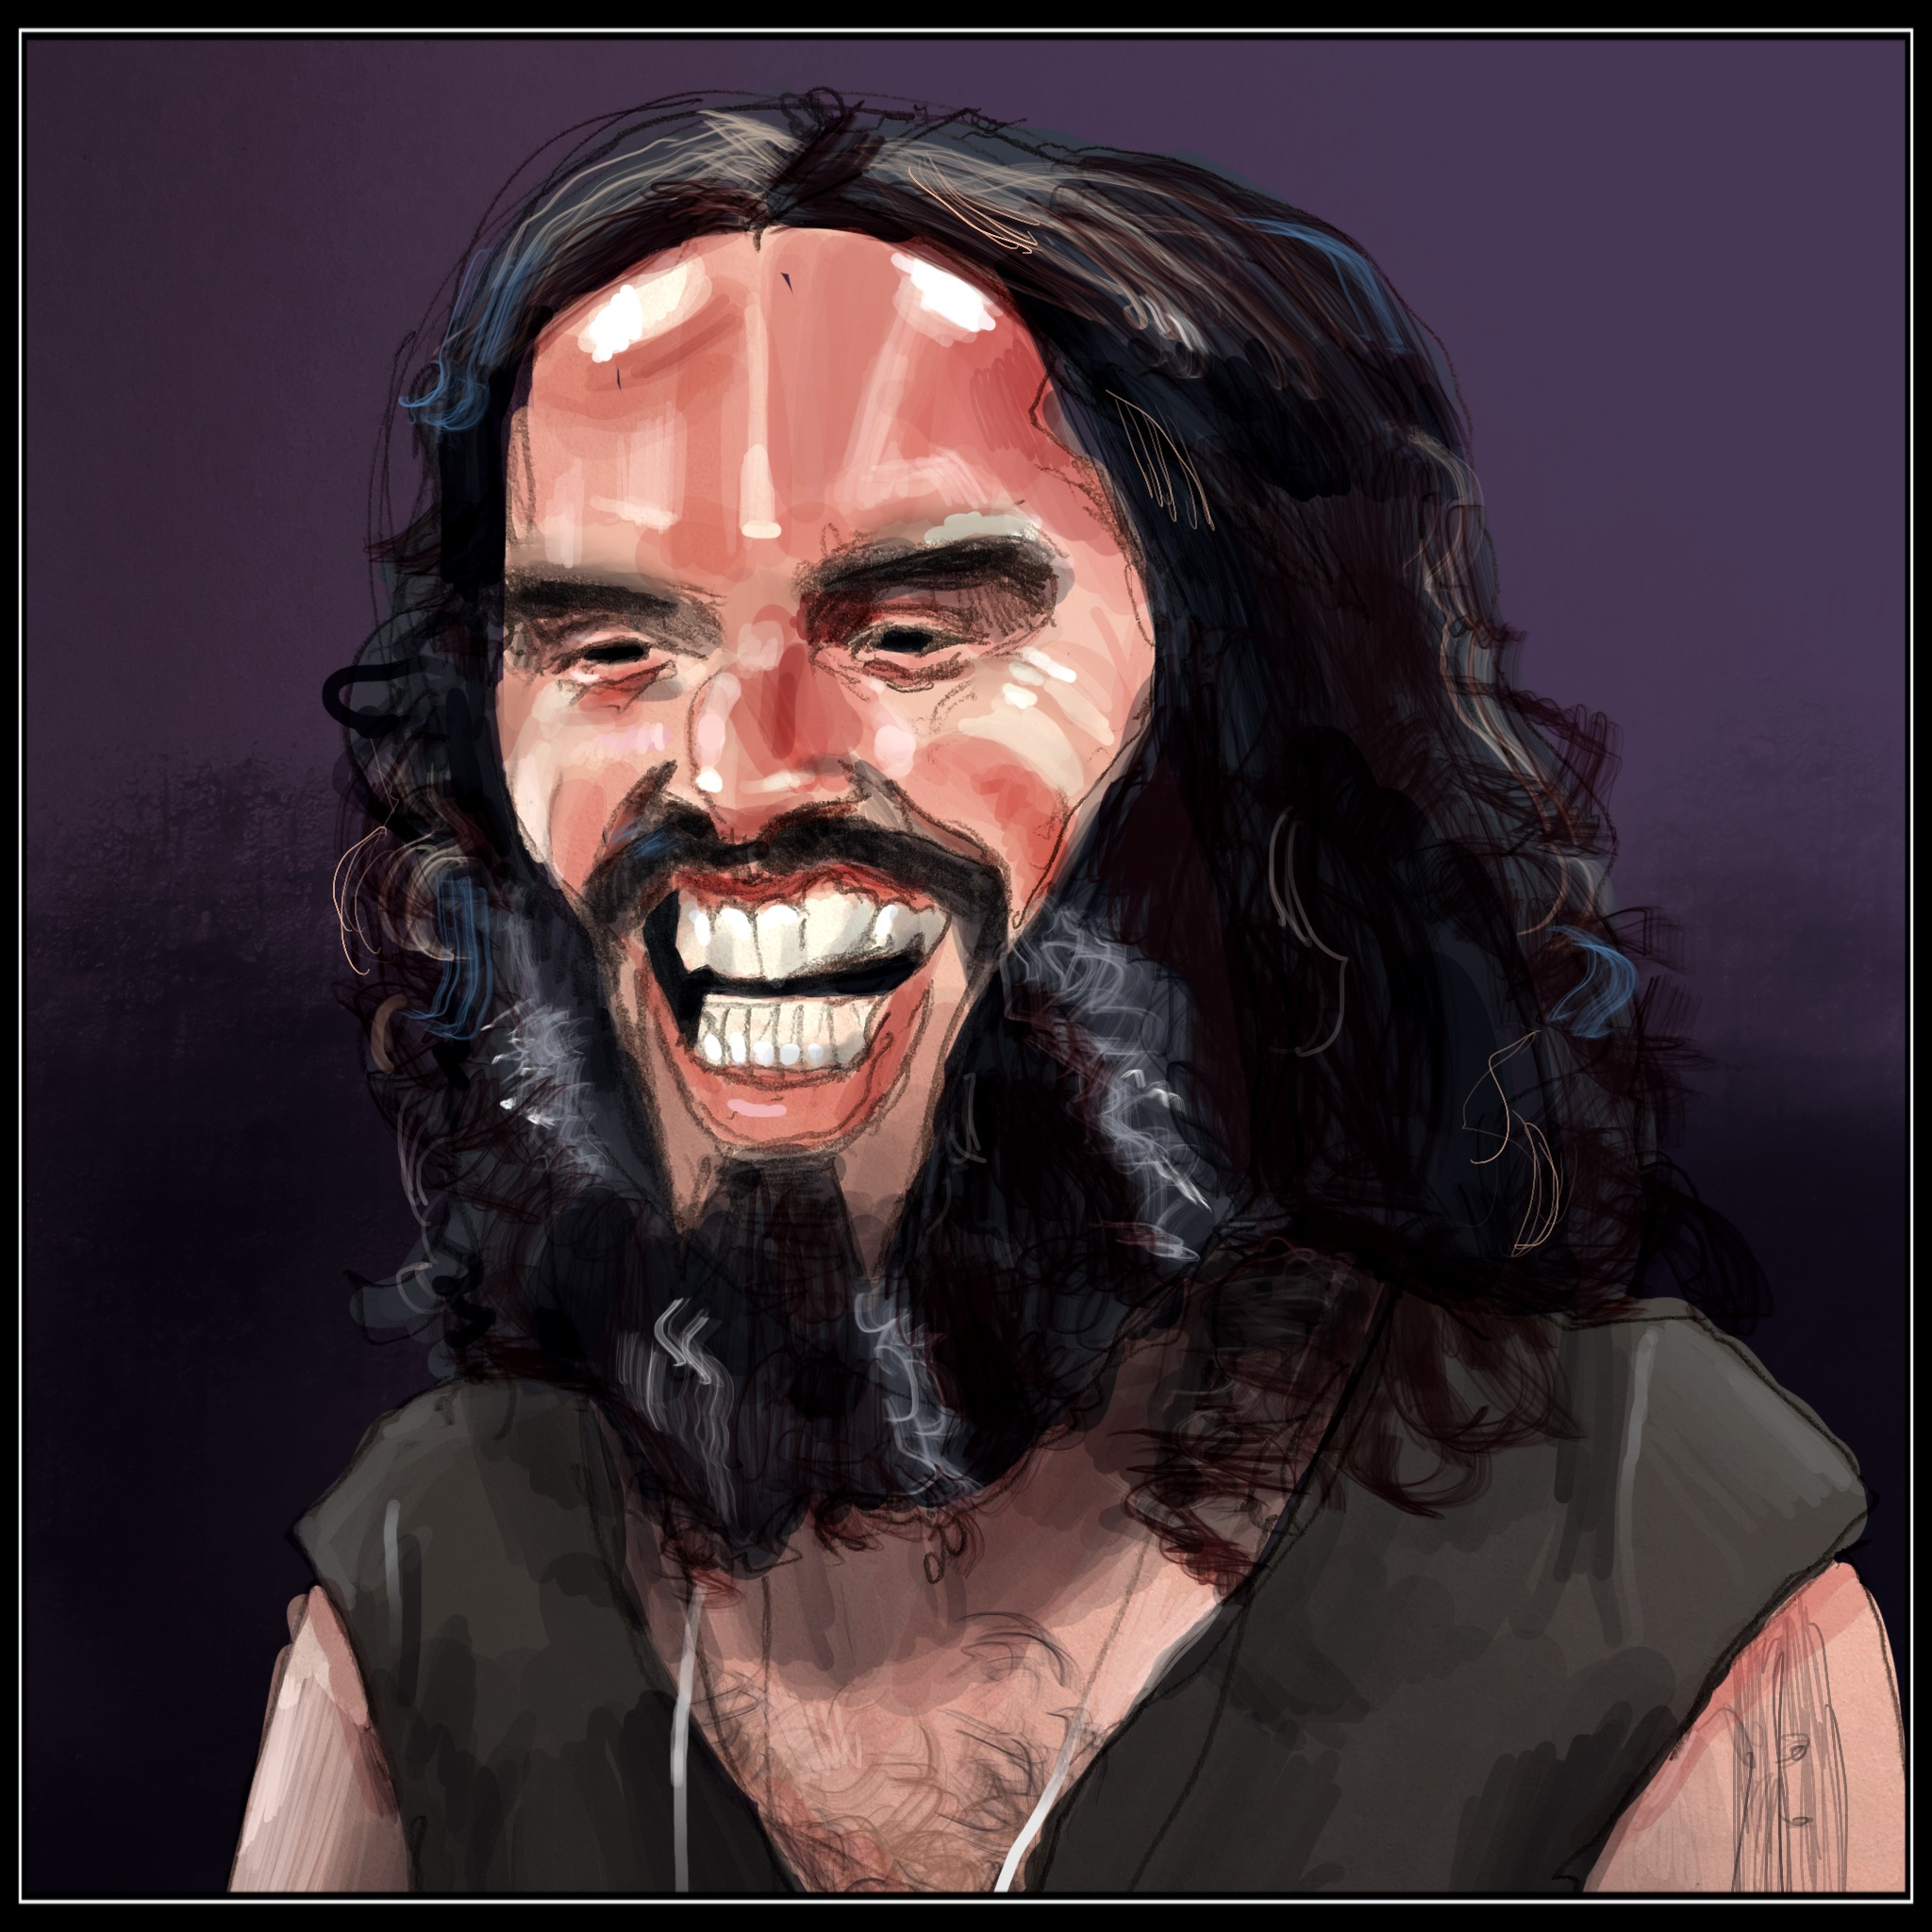 Russell Brand; English comedian, actor, radio host, author, and activist.